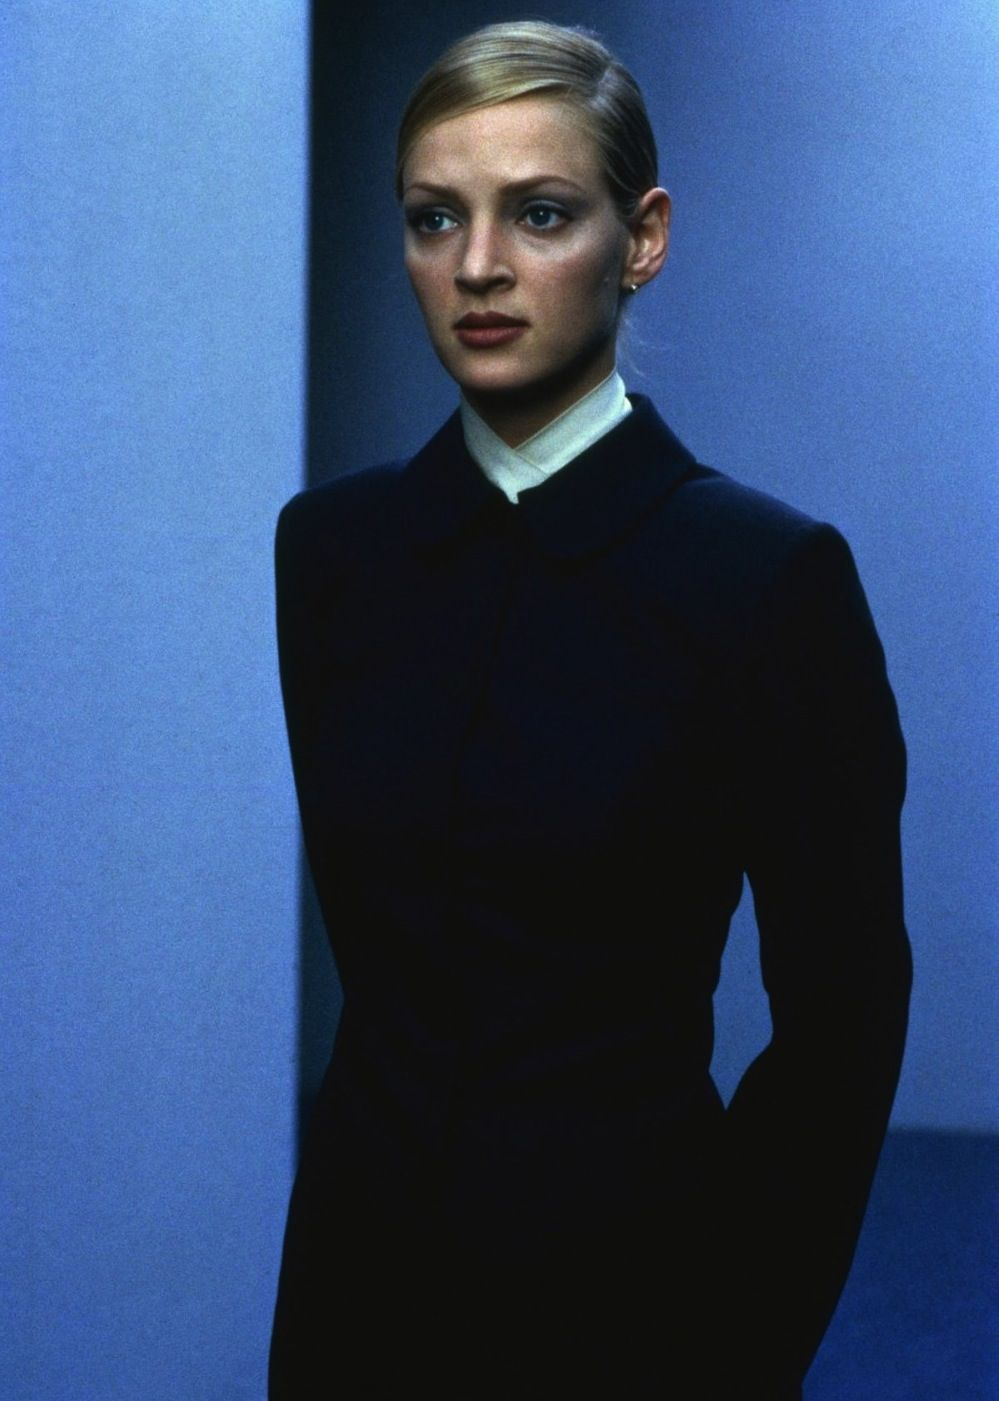 Uma Thurman in Gattaca | love her classic, elegant makeup and style